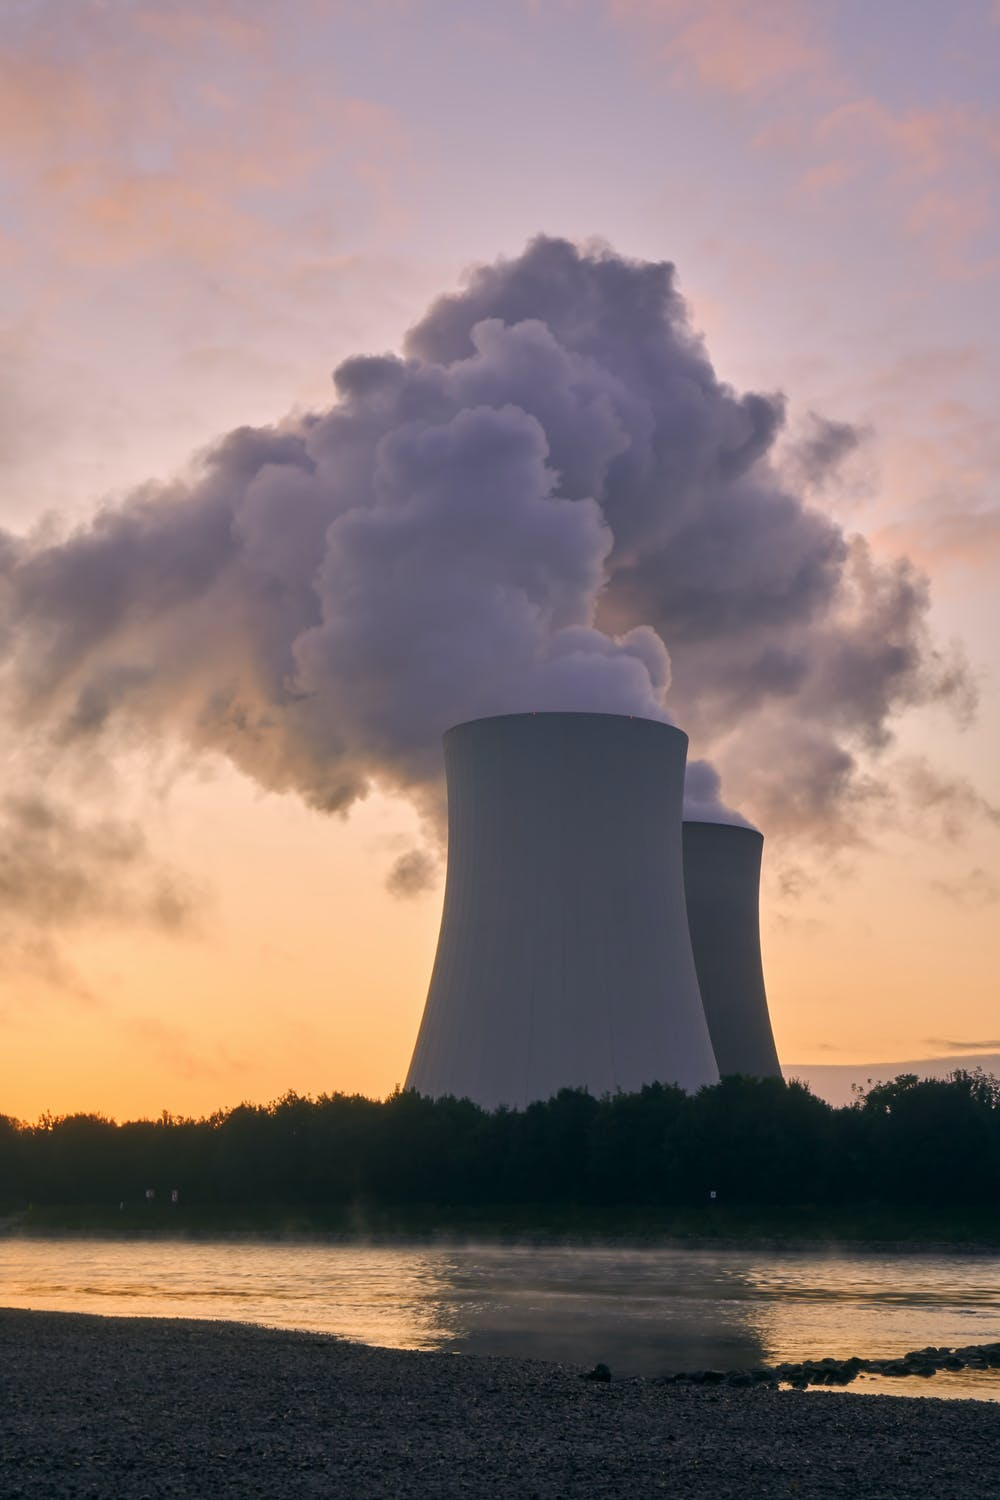 Nuclear Power Plant Image